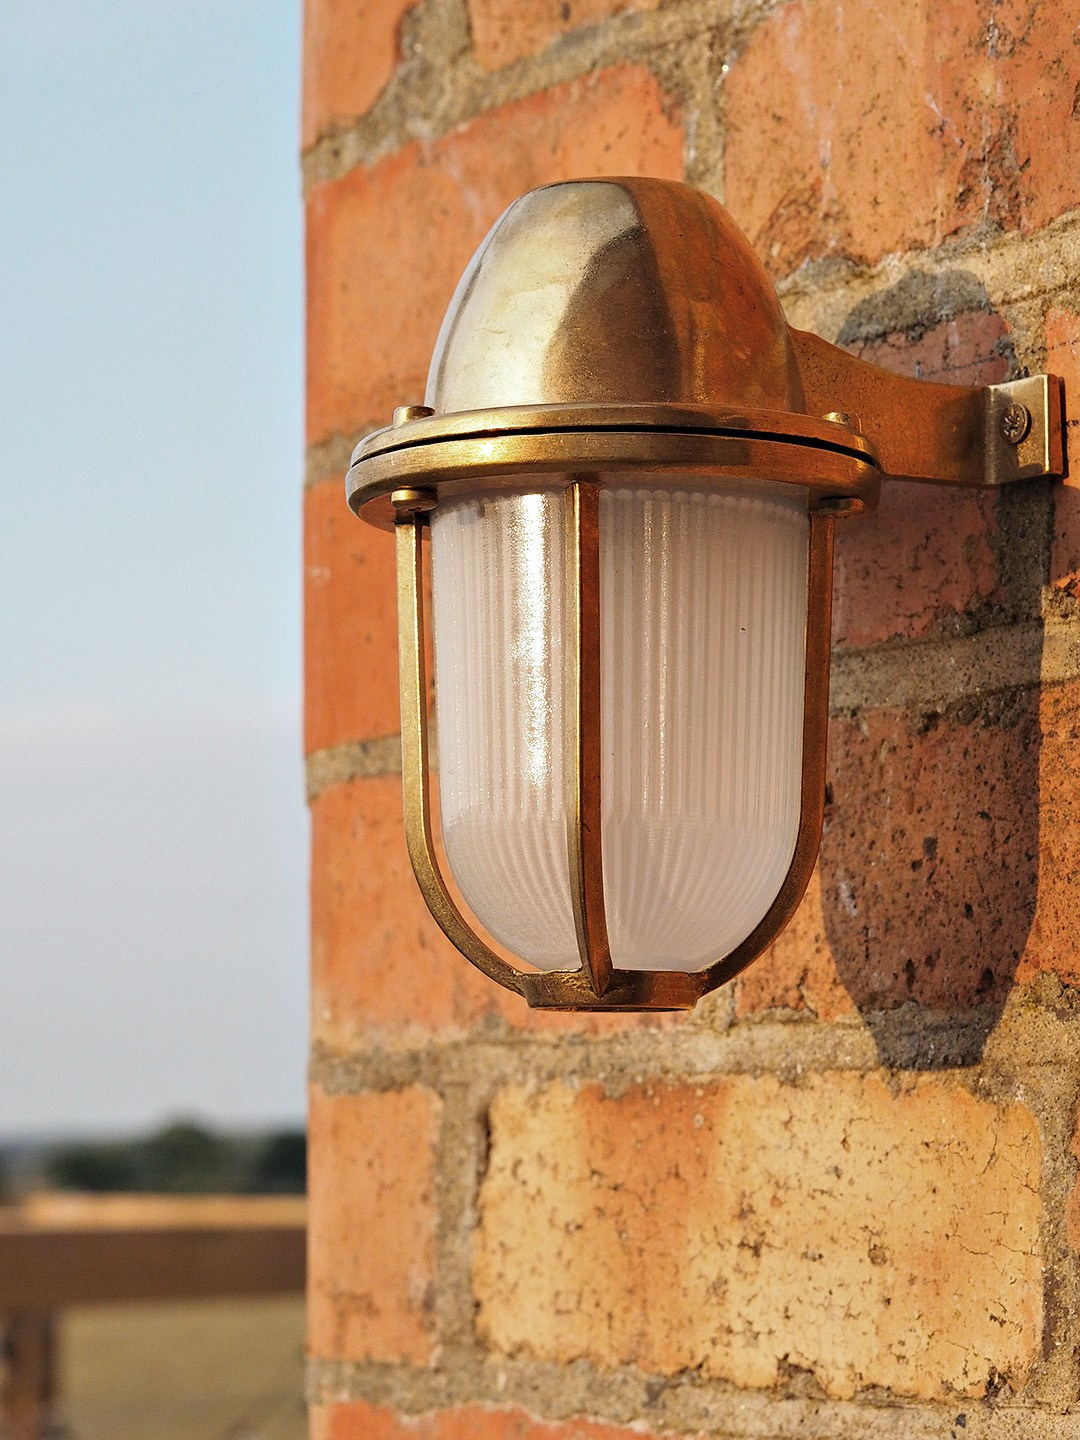 Outdoor brass lighting